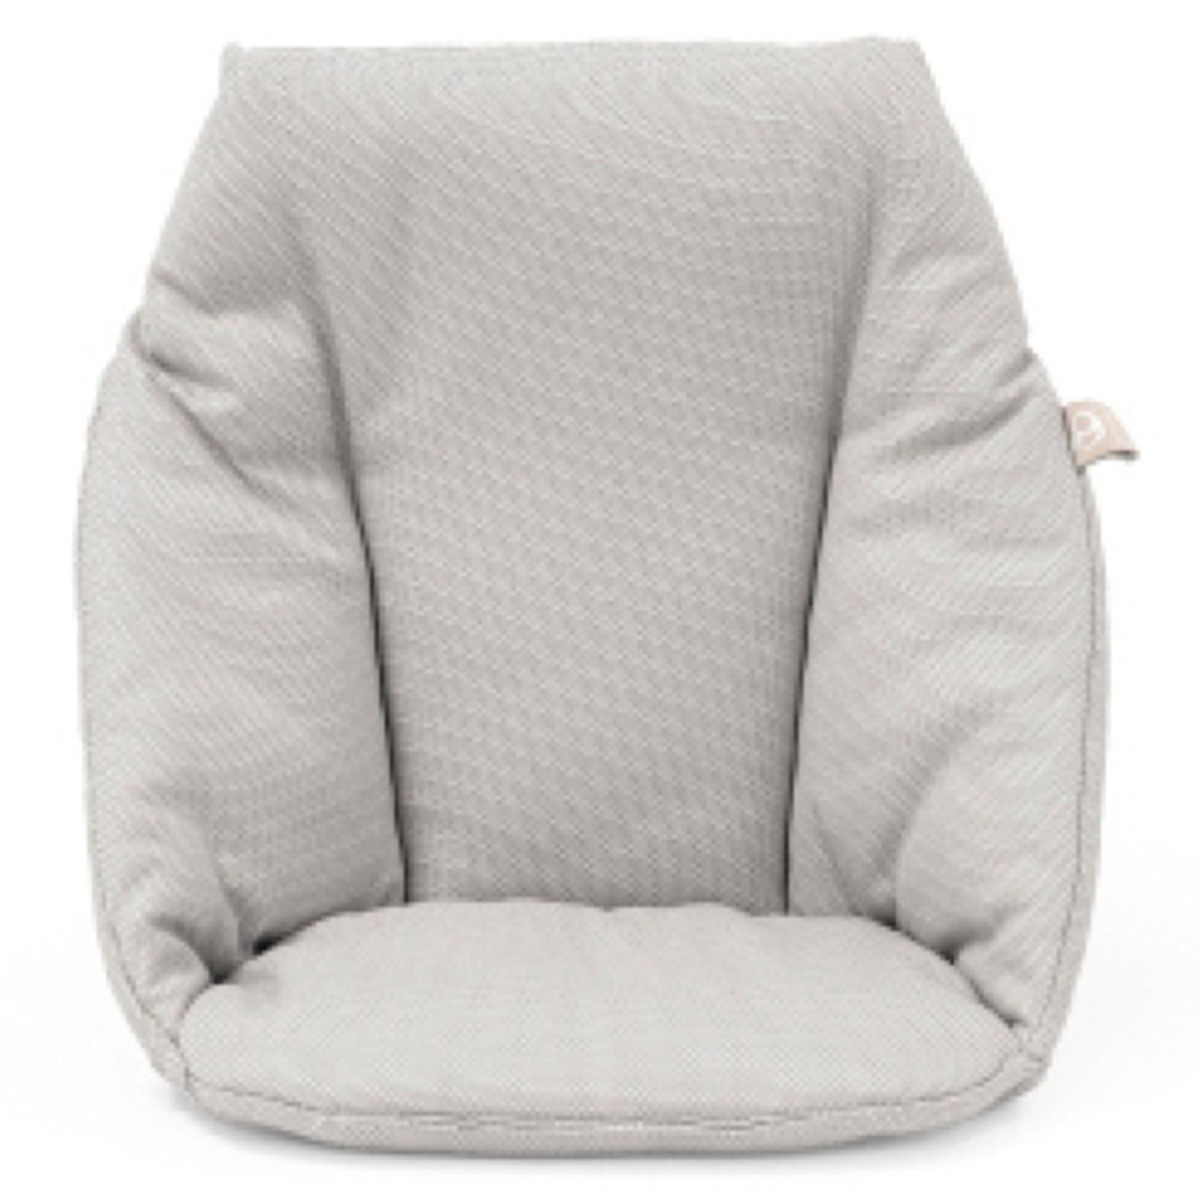 Chaise haute Coussin Baby Tripp Trapp - Gris Intemporel Coussin Baby Tripp Trapp - Gris Intemporel